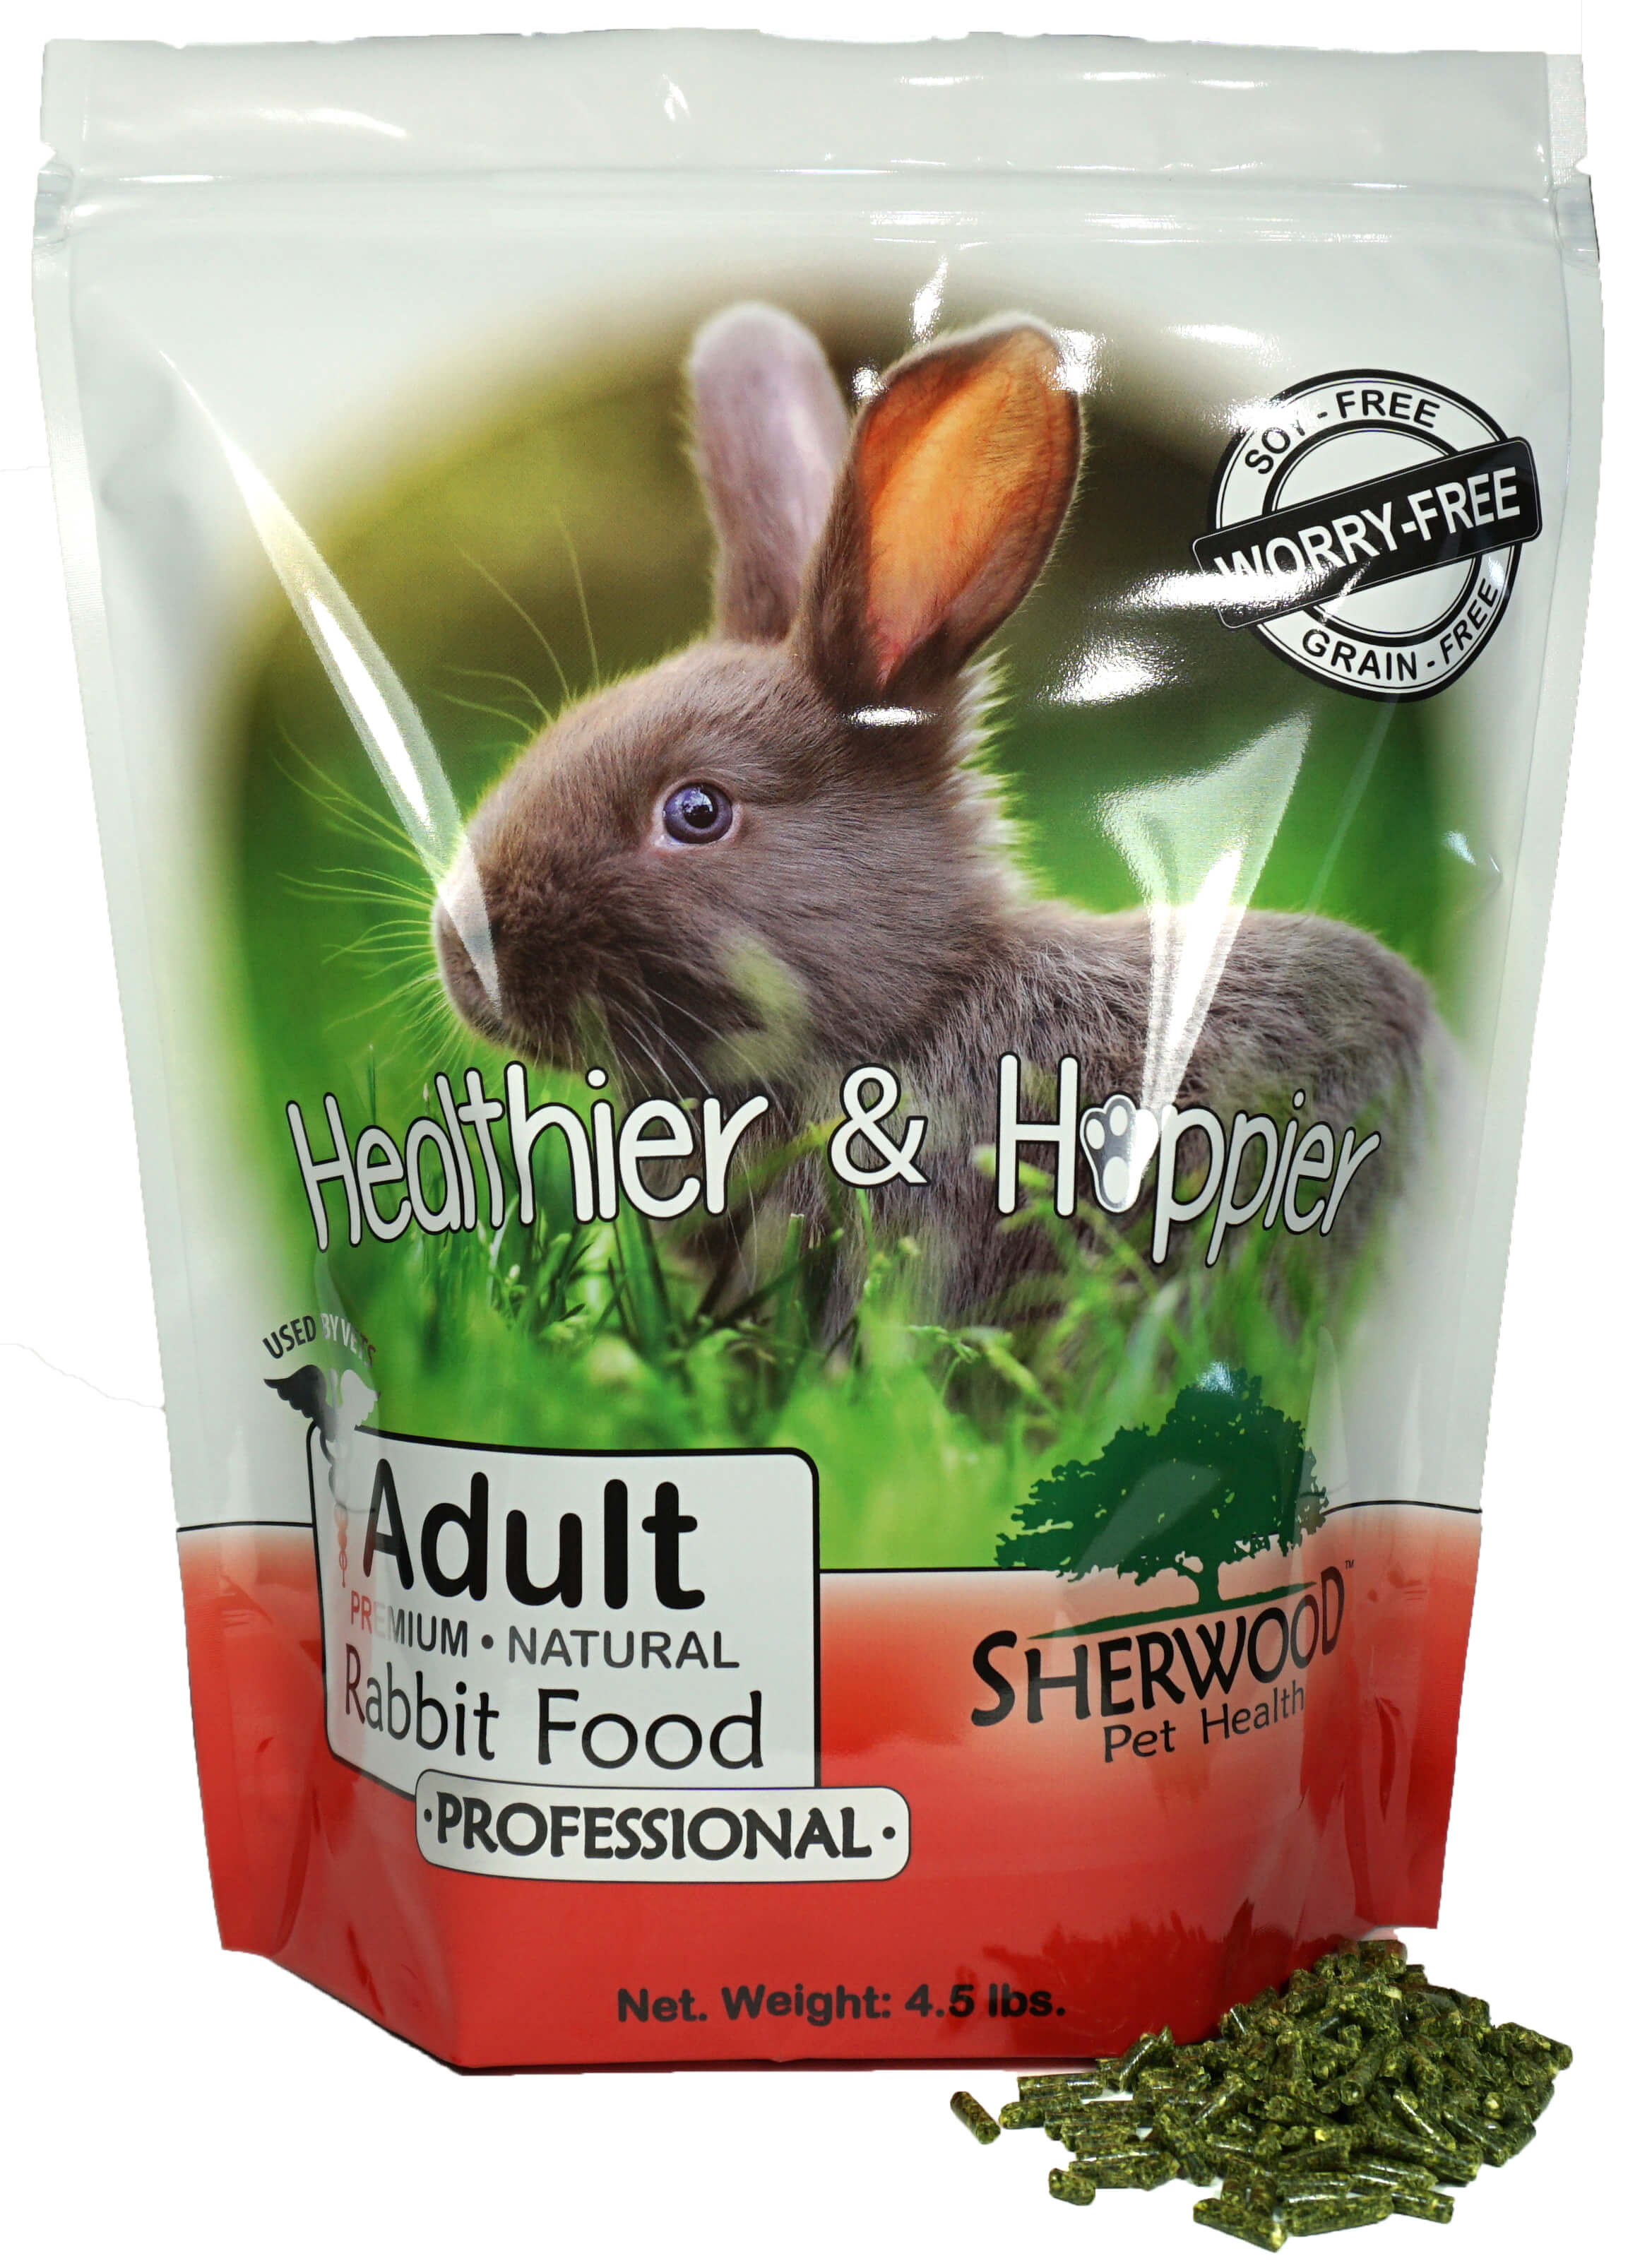 Rabbit Food, Adult by Sherwood Pet Health, PROFESSIONAL (4.5 lb) (Vet used & recommended) by Sherwood Pet Health